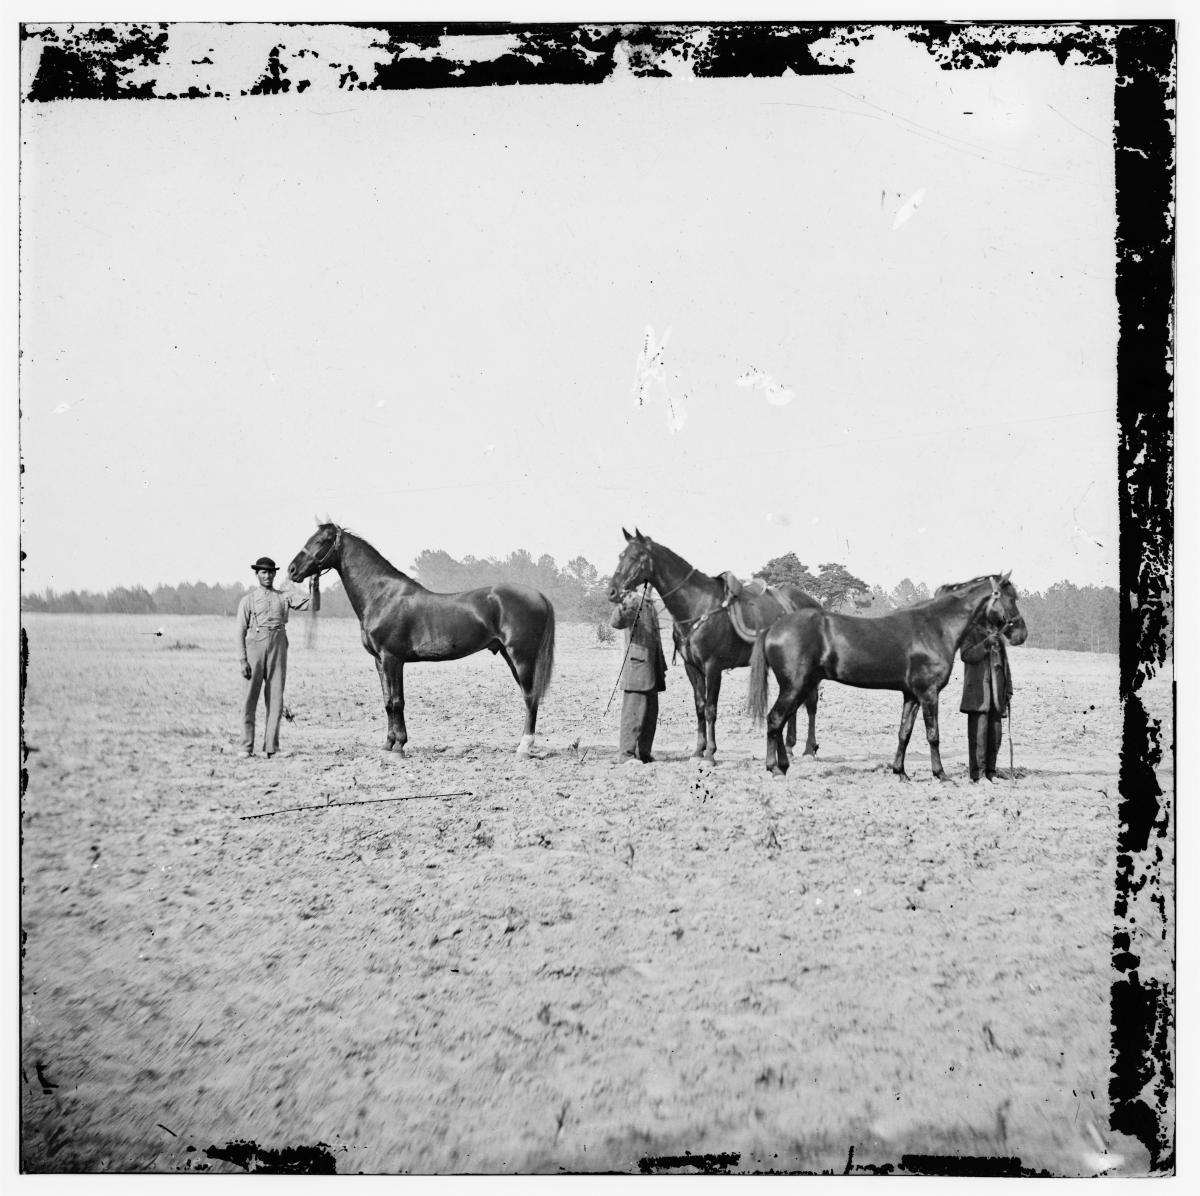 Grant as a young man, in a field with three horses